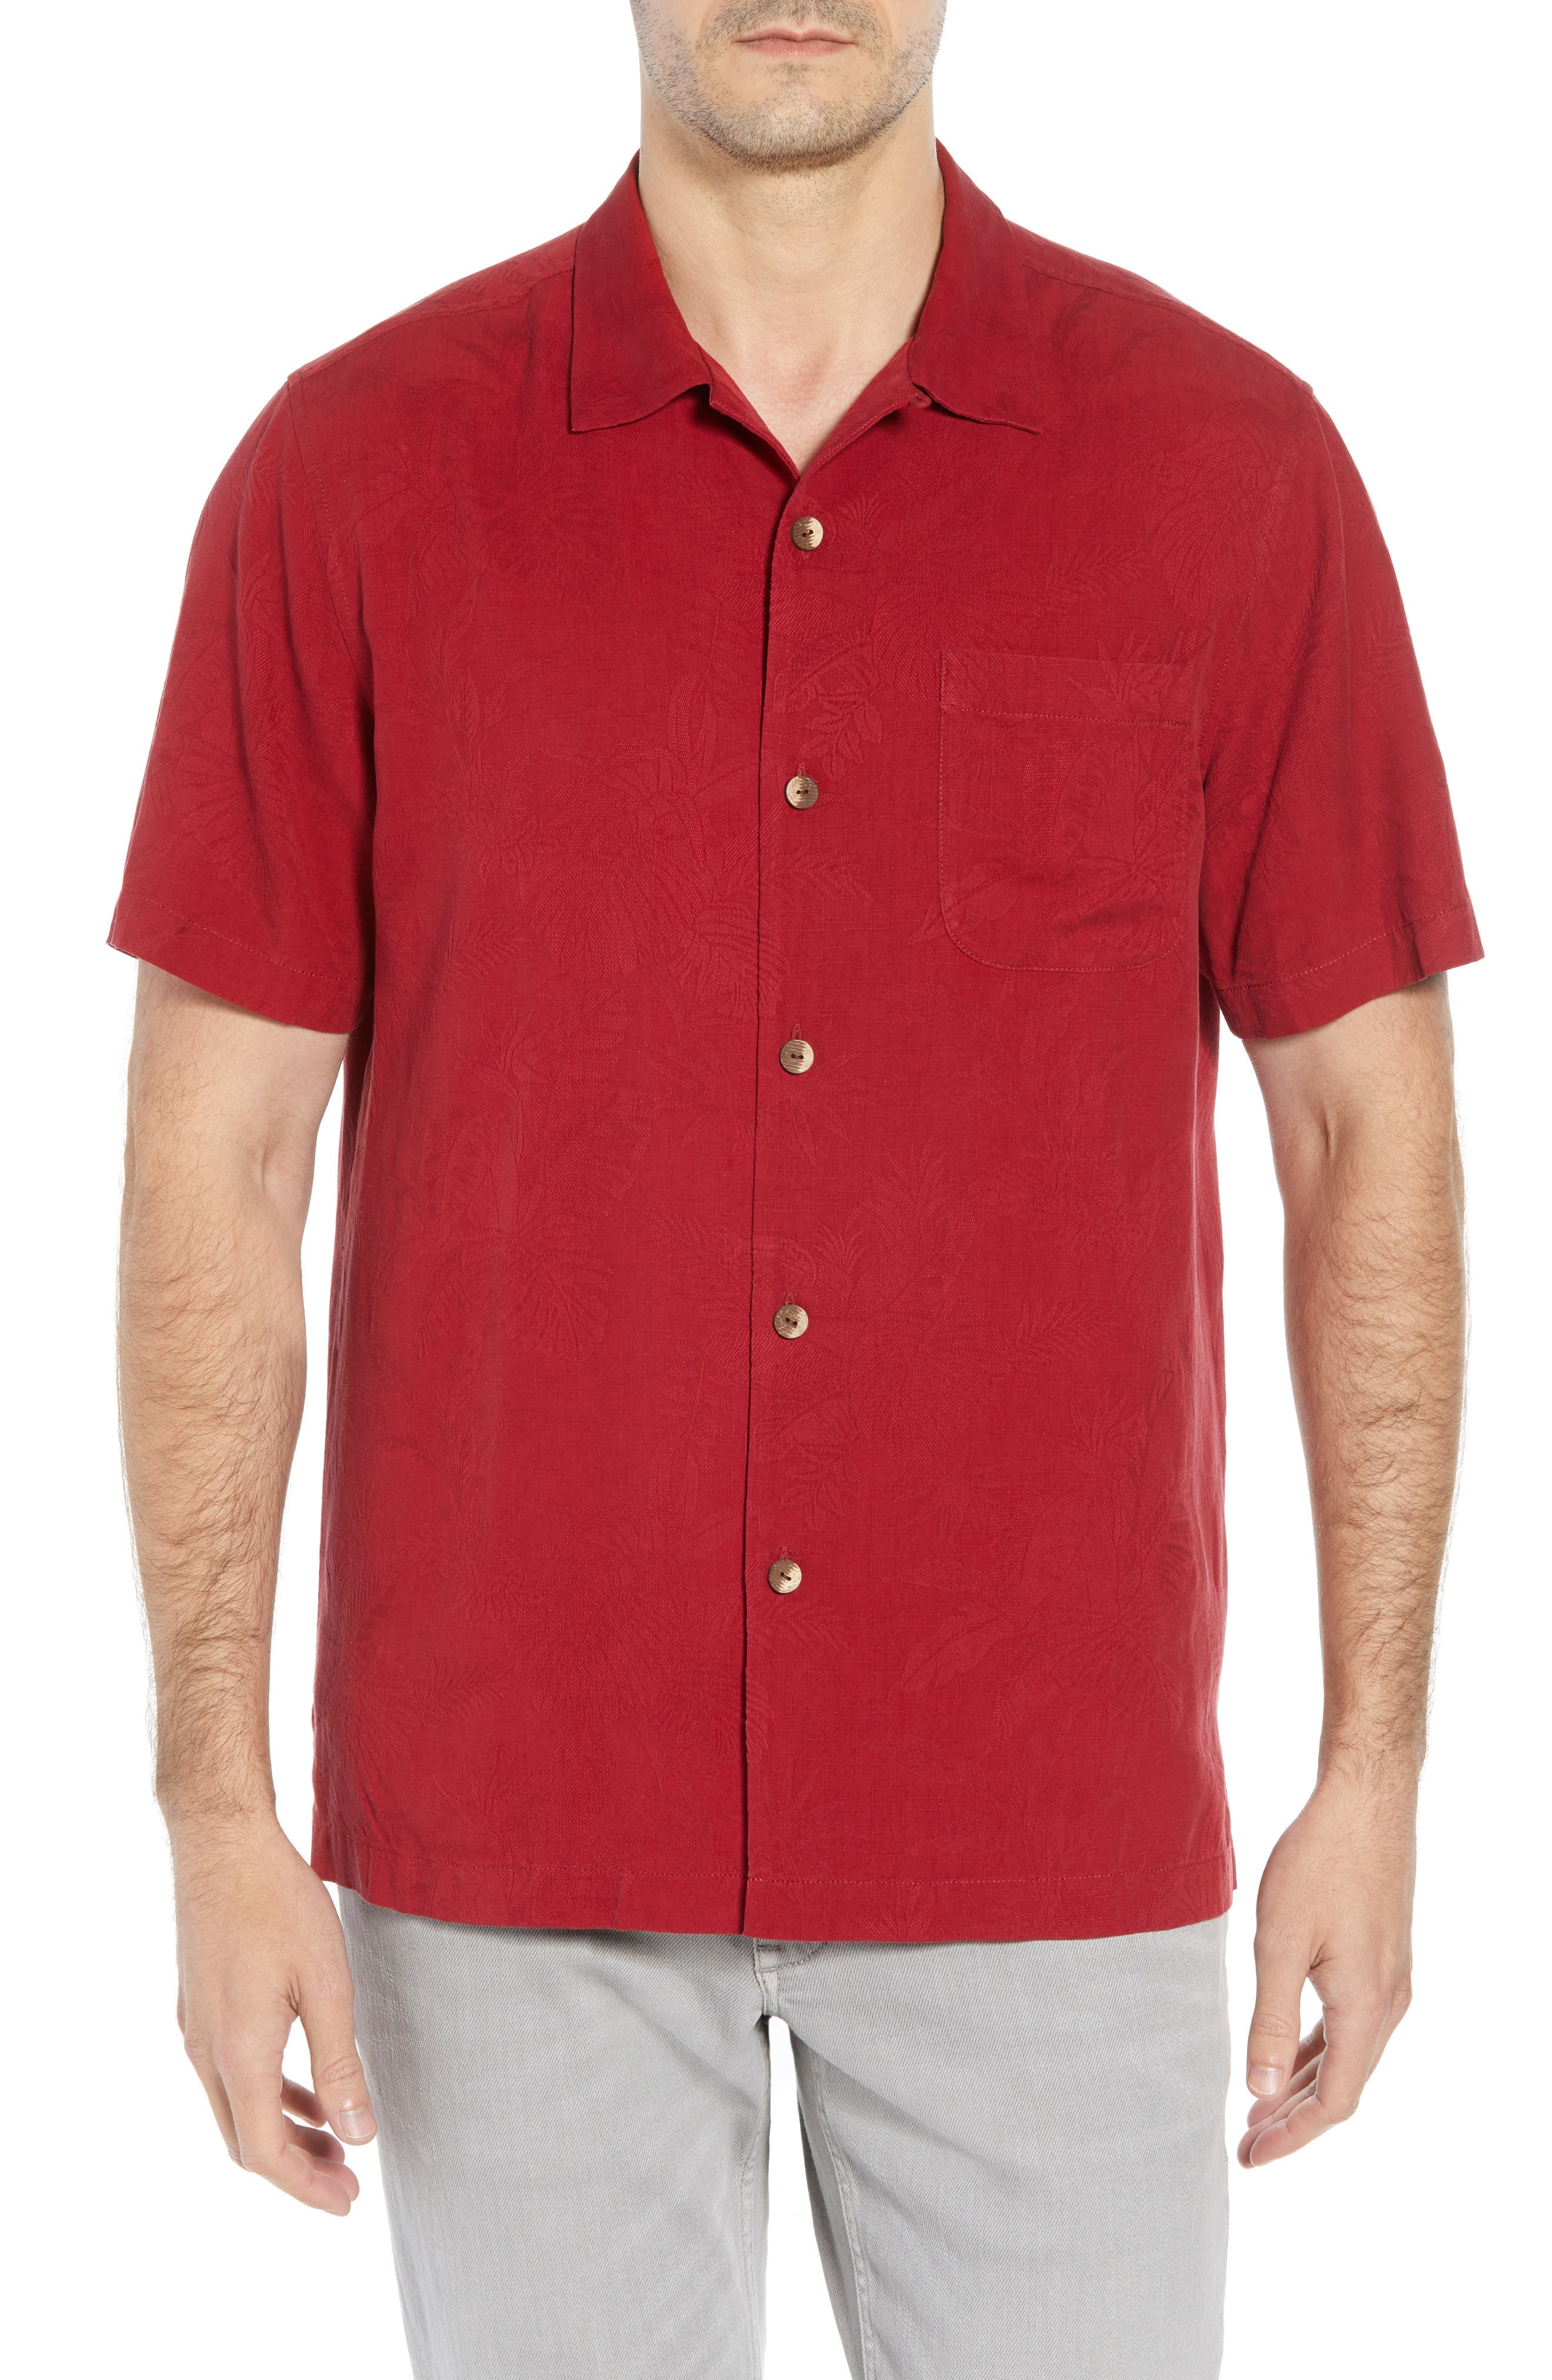 St Lucia Fronds Silk Camp Shirt,                             Main thumbnail 1, color,                             RED/ PLUM RAISIN